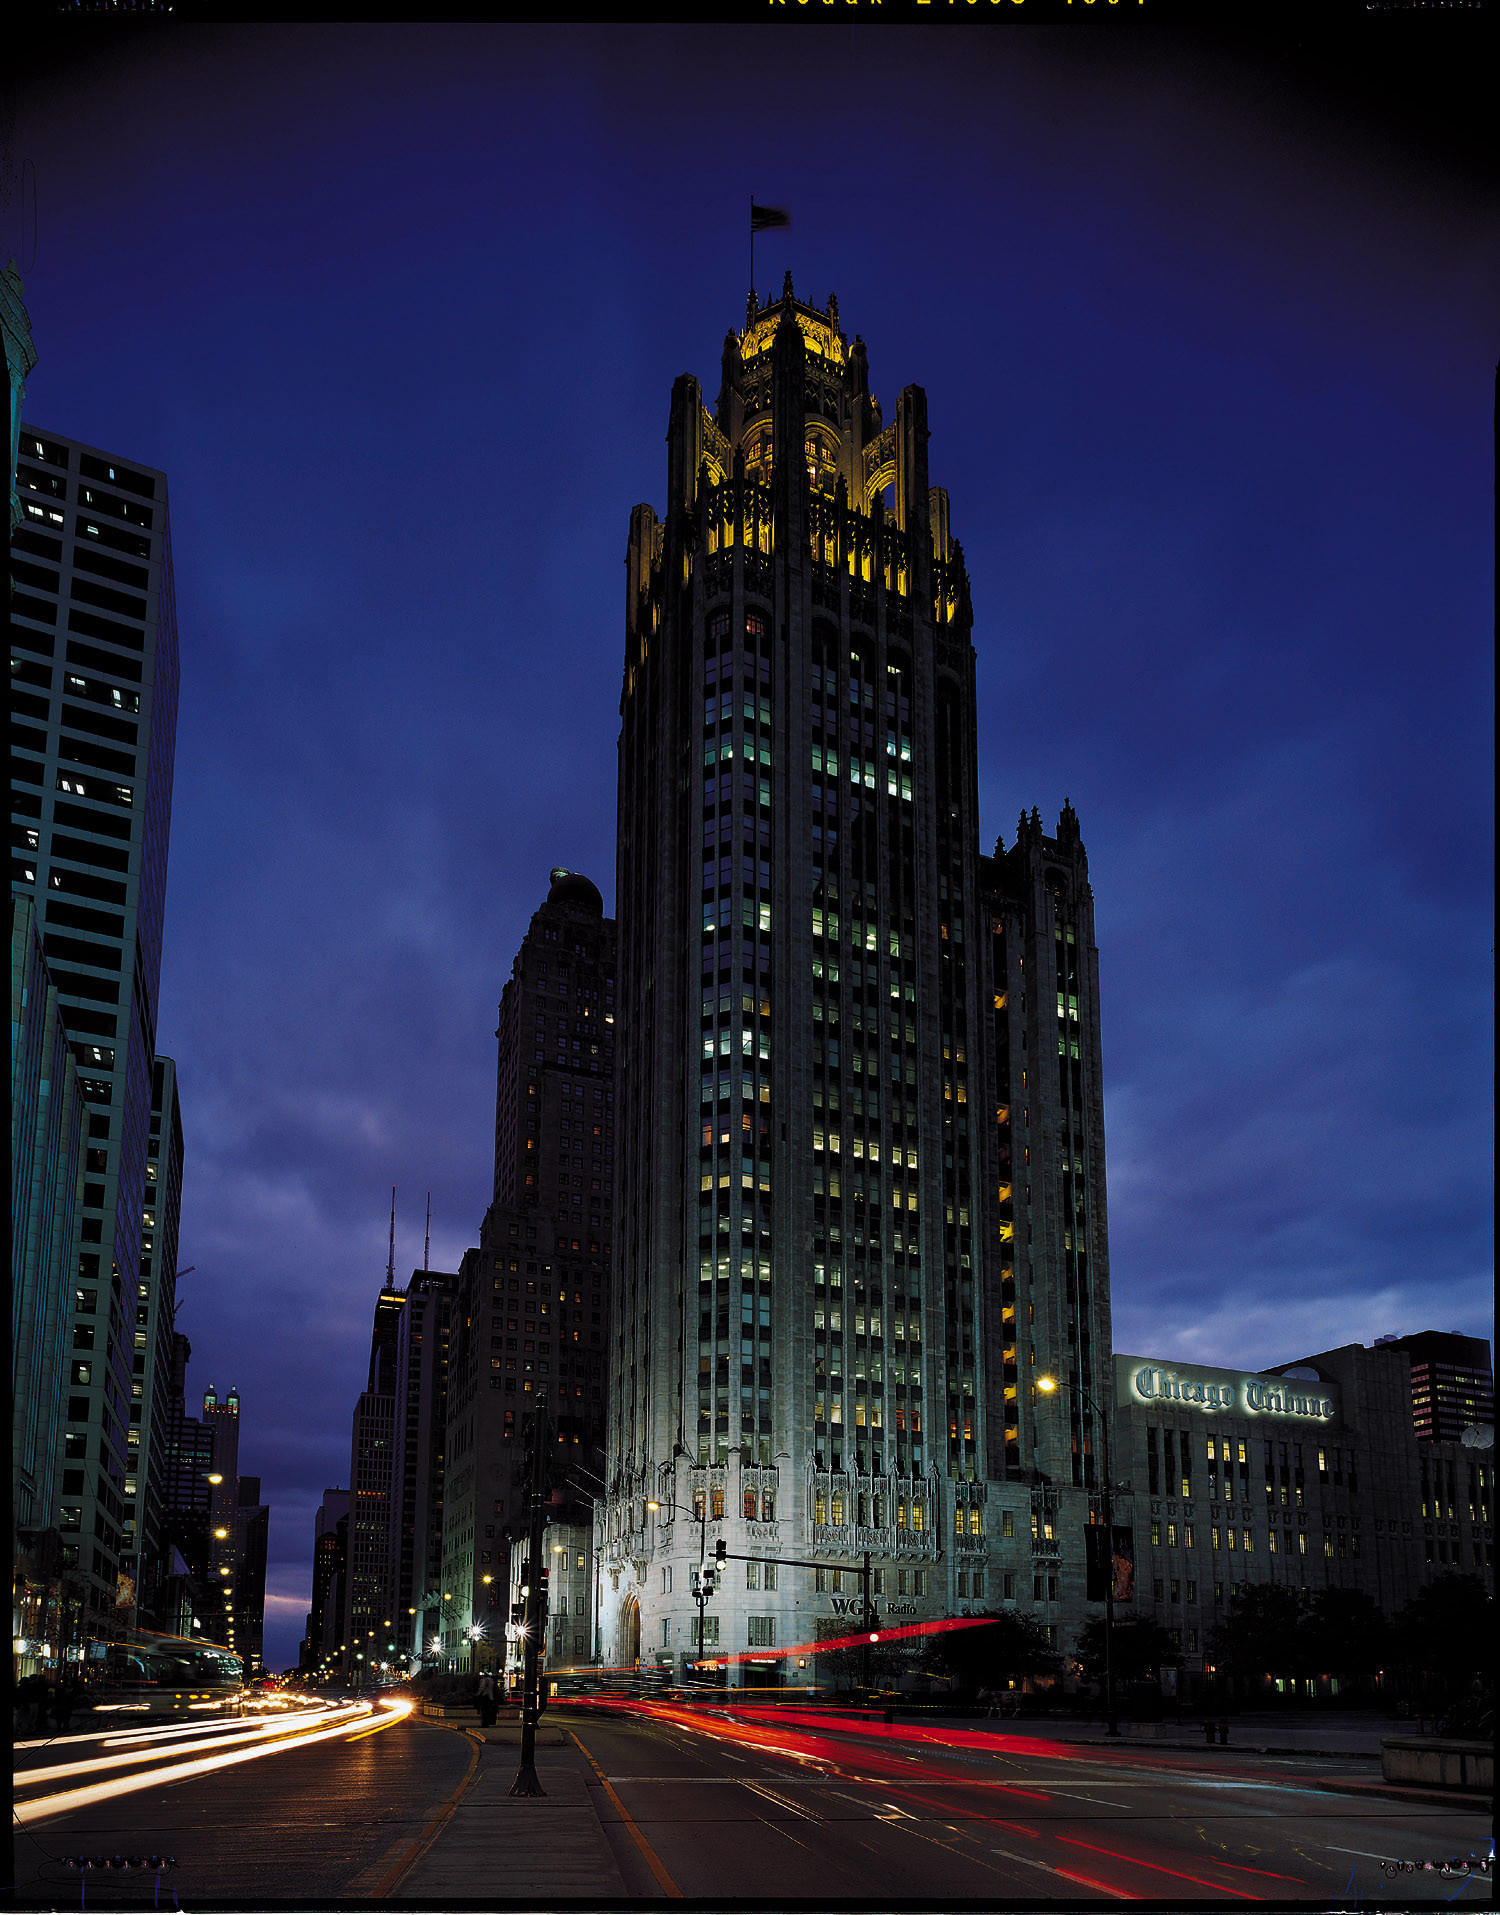 Tribune Tower, headquarters of Tribune Co. and the Chicago Tribune.